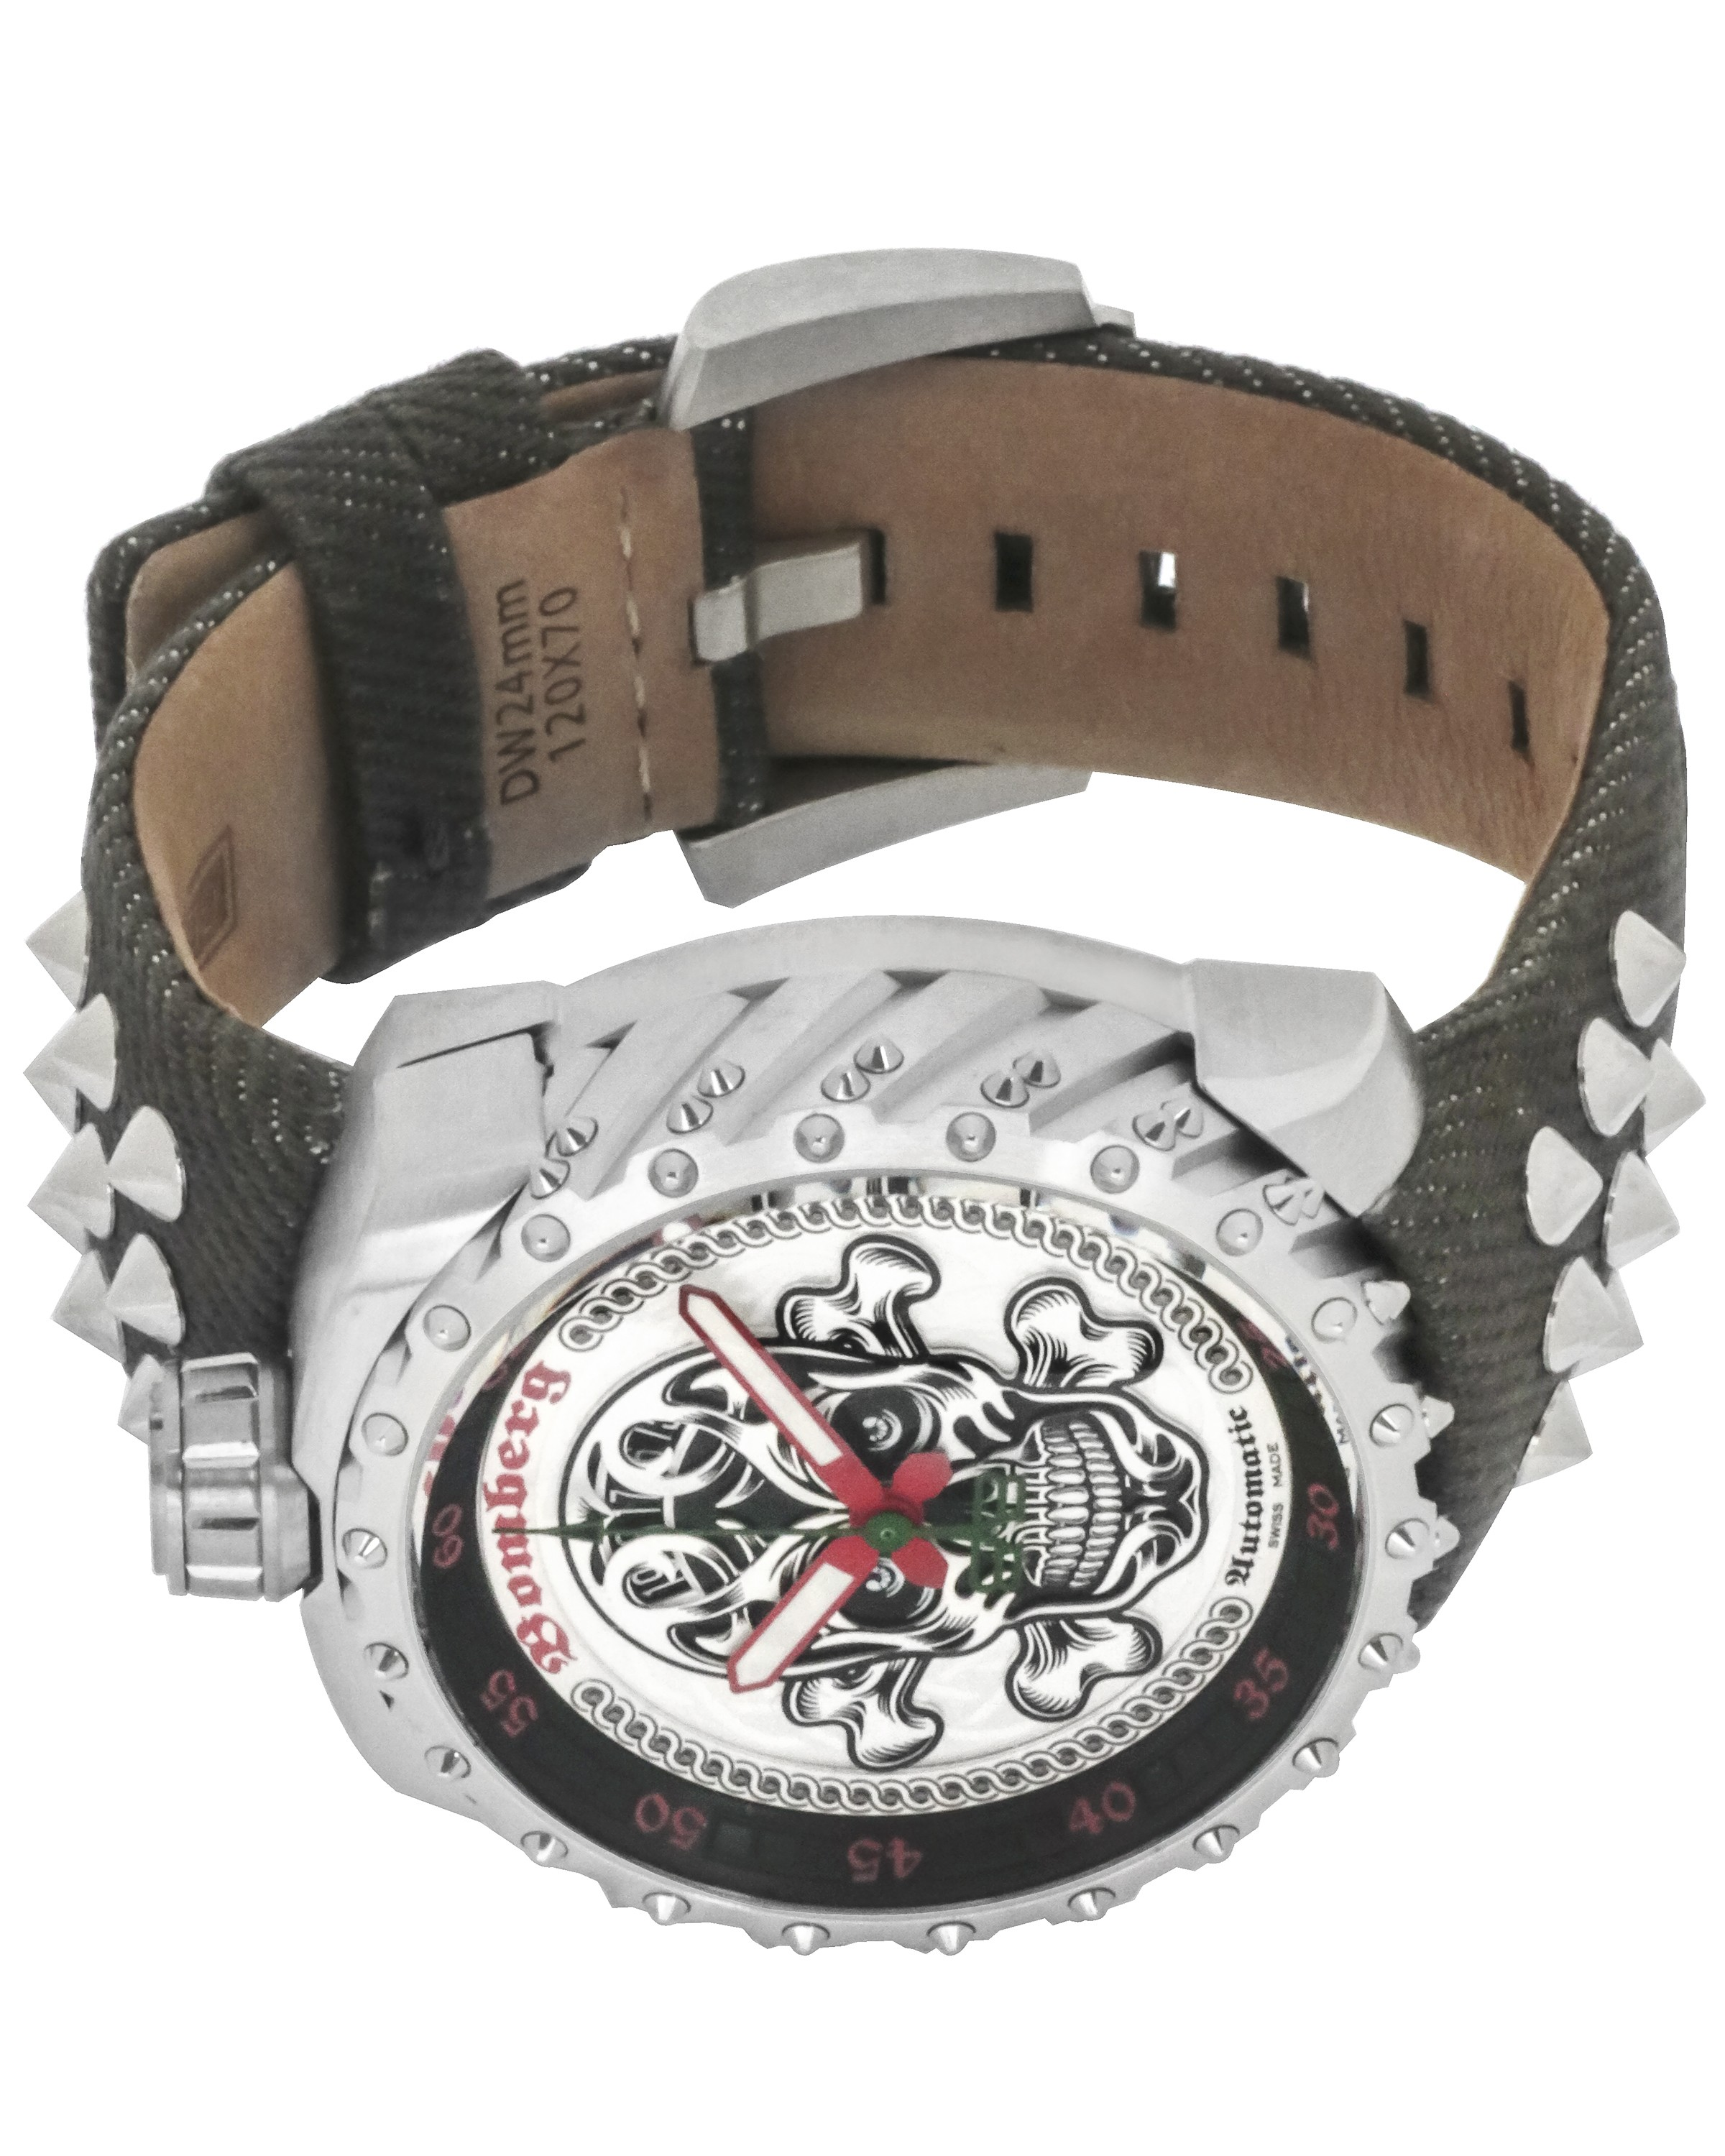 Bomberg Bolt-68 Black Nails Badass Limited Edition Automatic Men's Watch BS45ASS.039-4.3